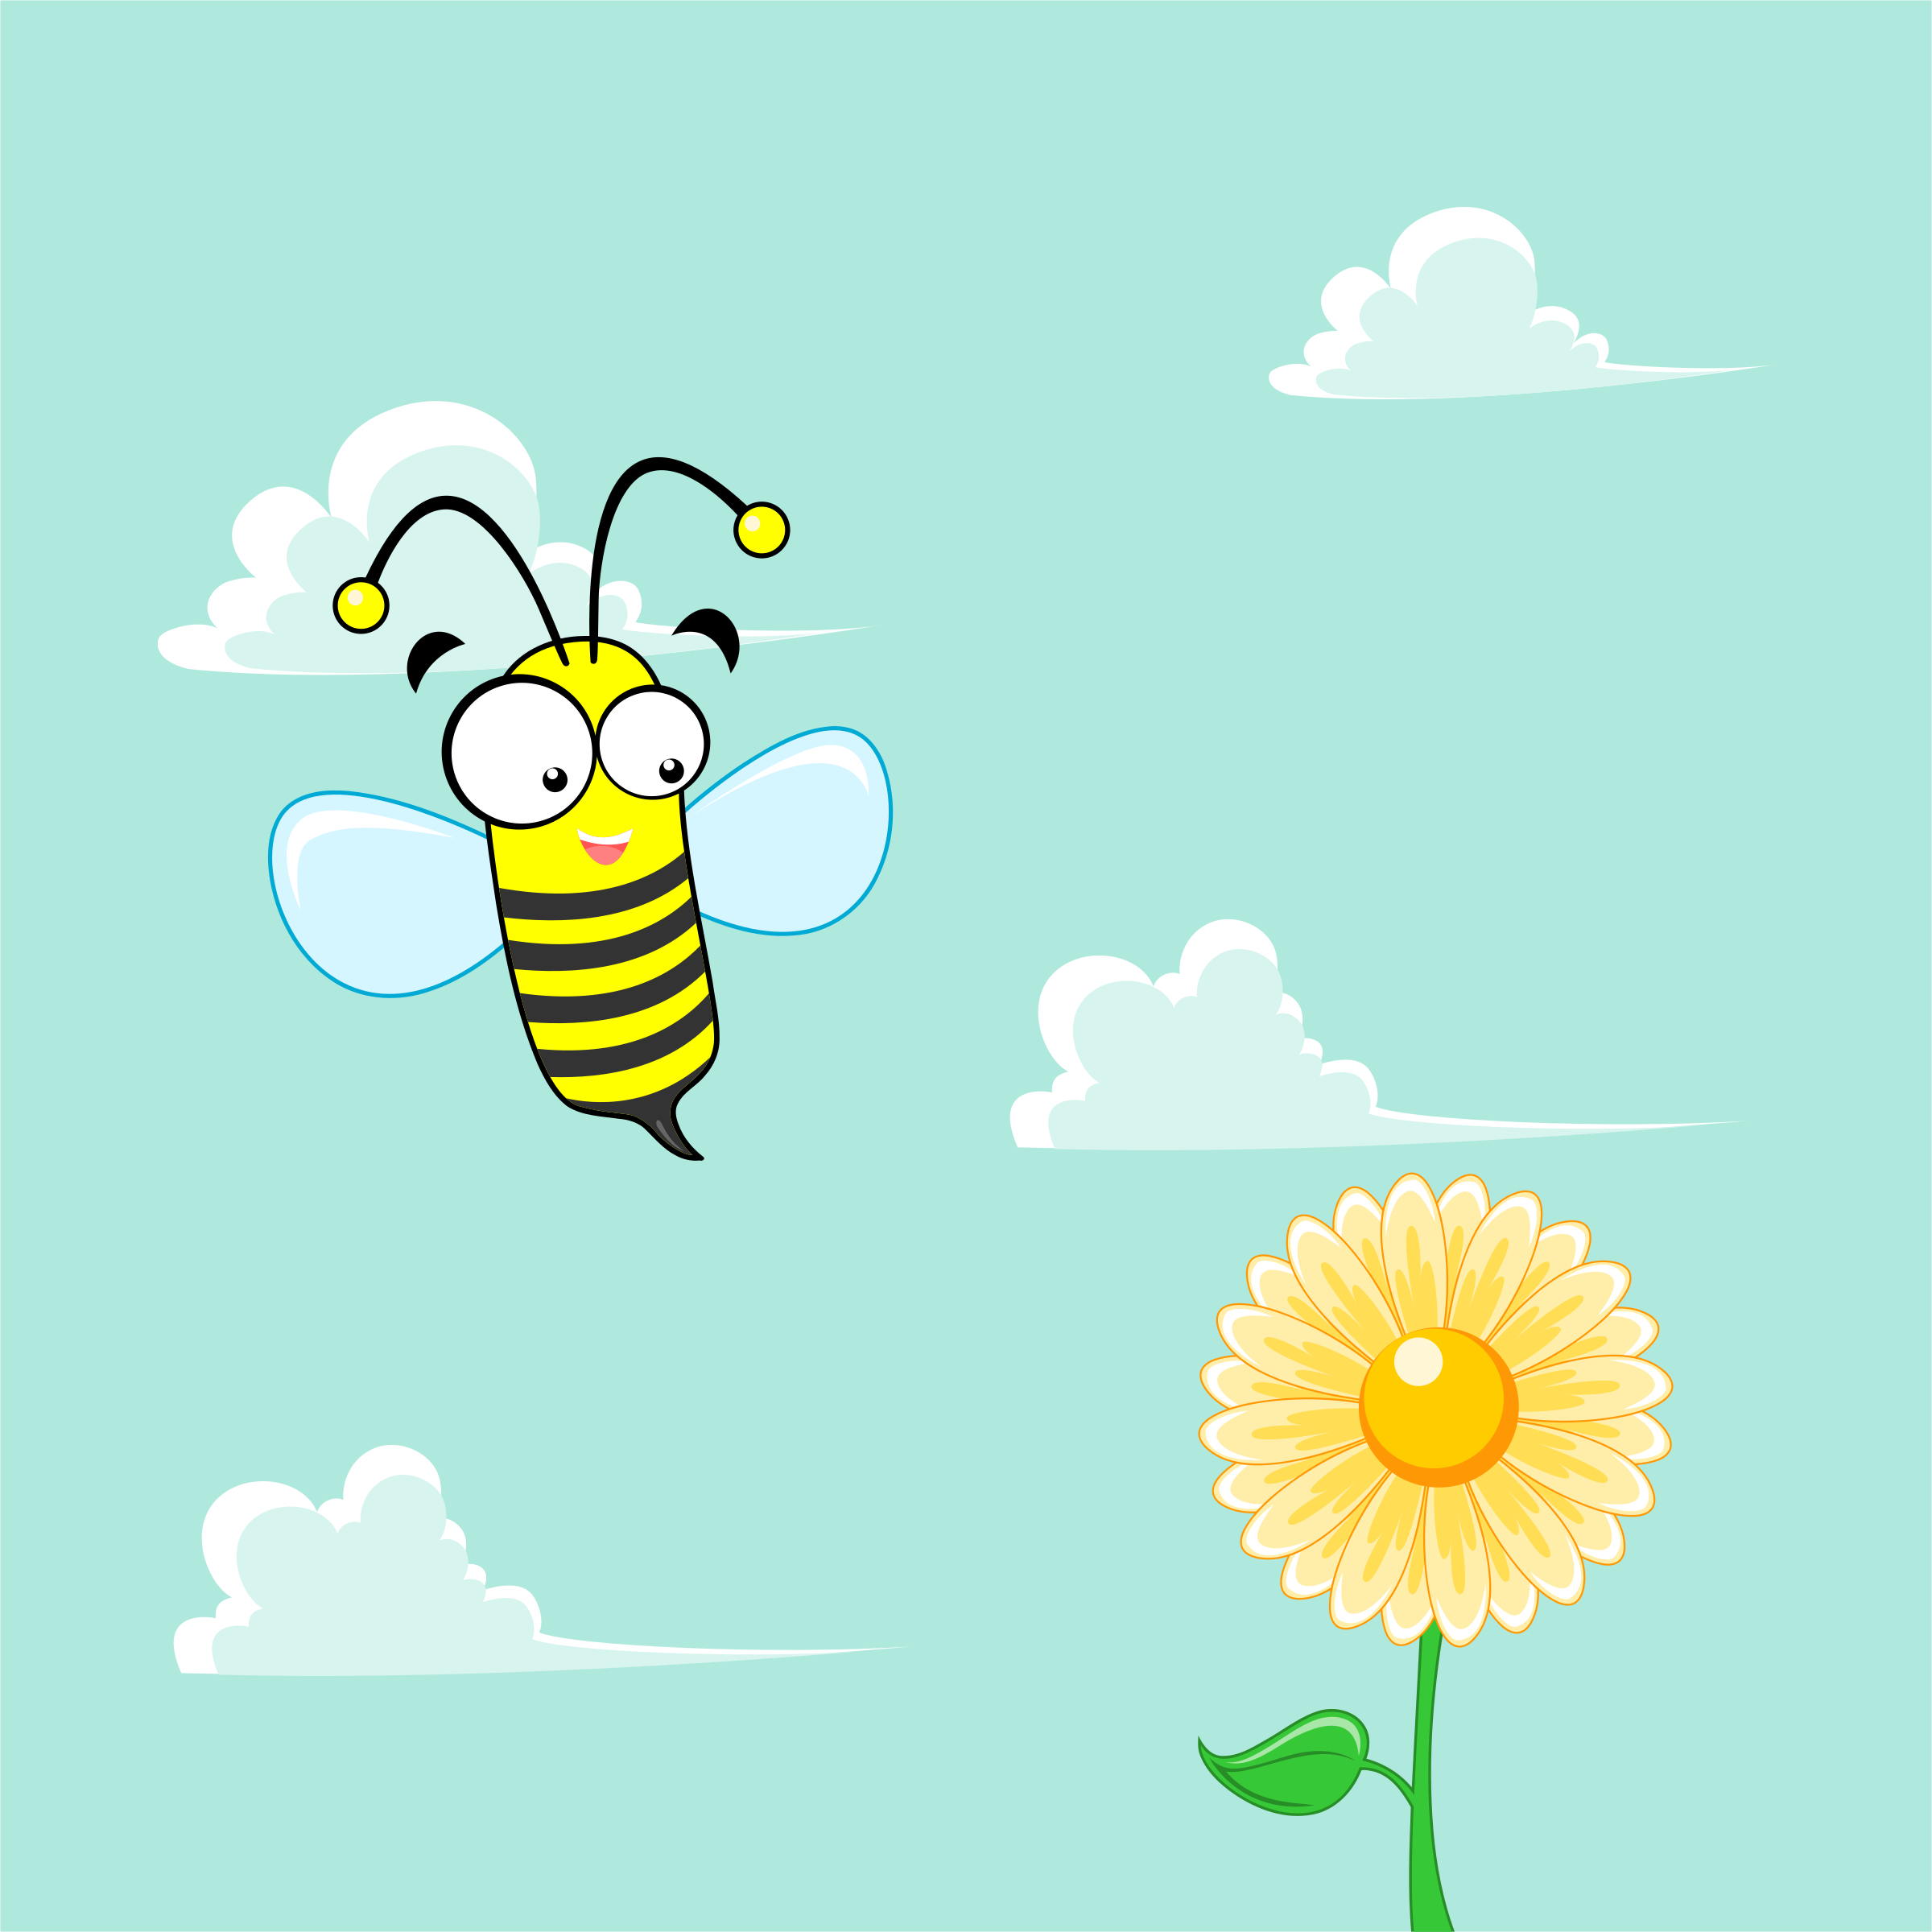 bee flying on the flower by nugroho